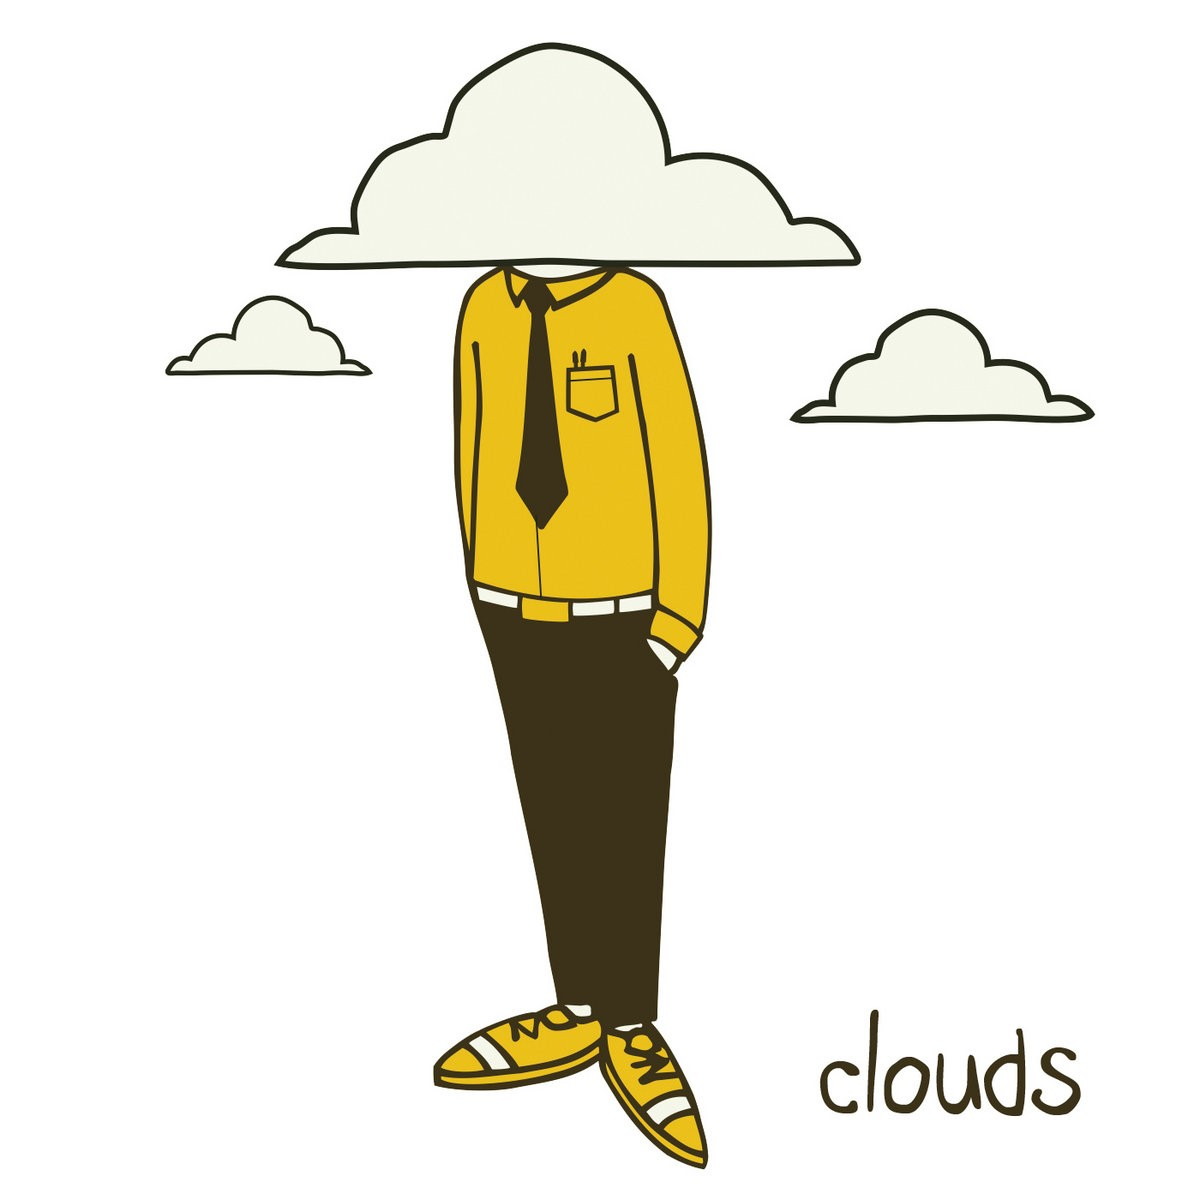 A figure with a yellow shirt and shoes and brown pants and tie with their head literally in the clouds forming the cover of Clouds by Apollo Brown.